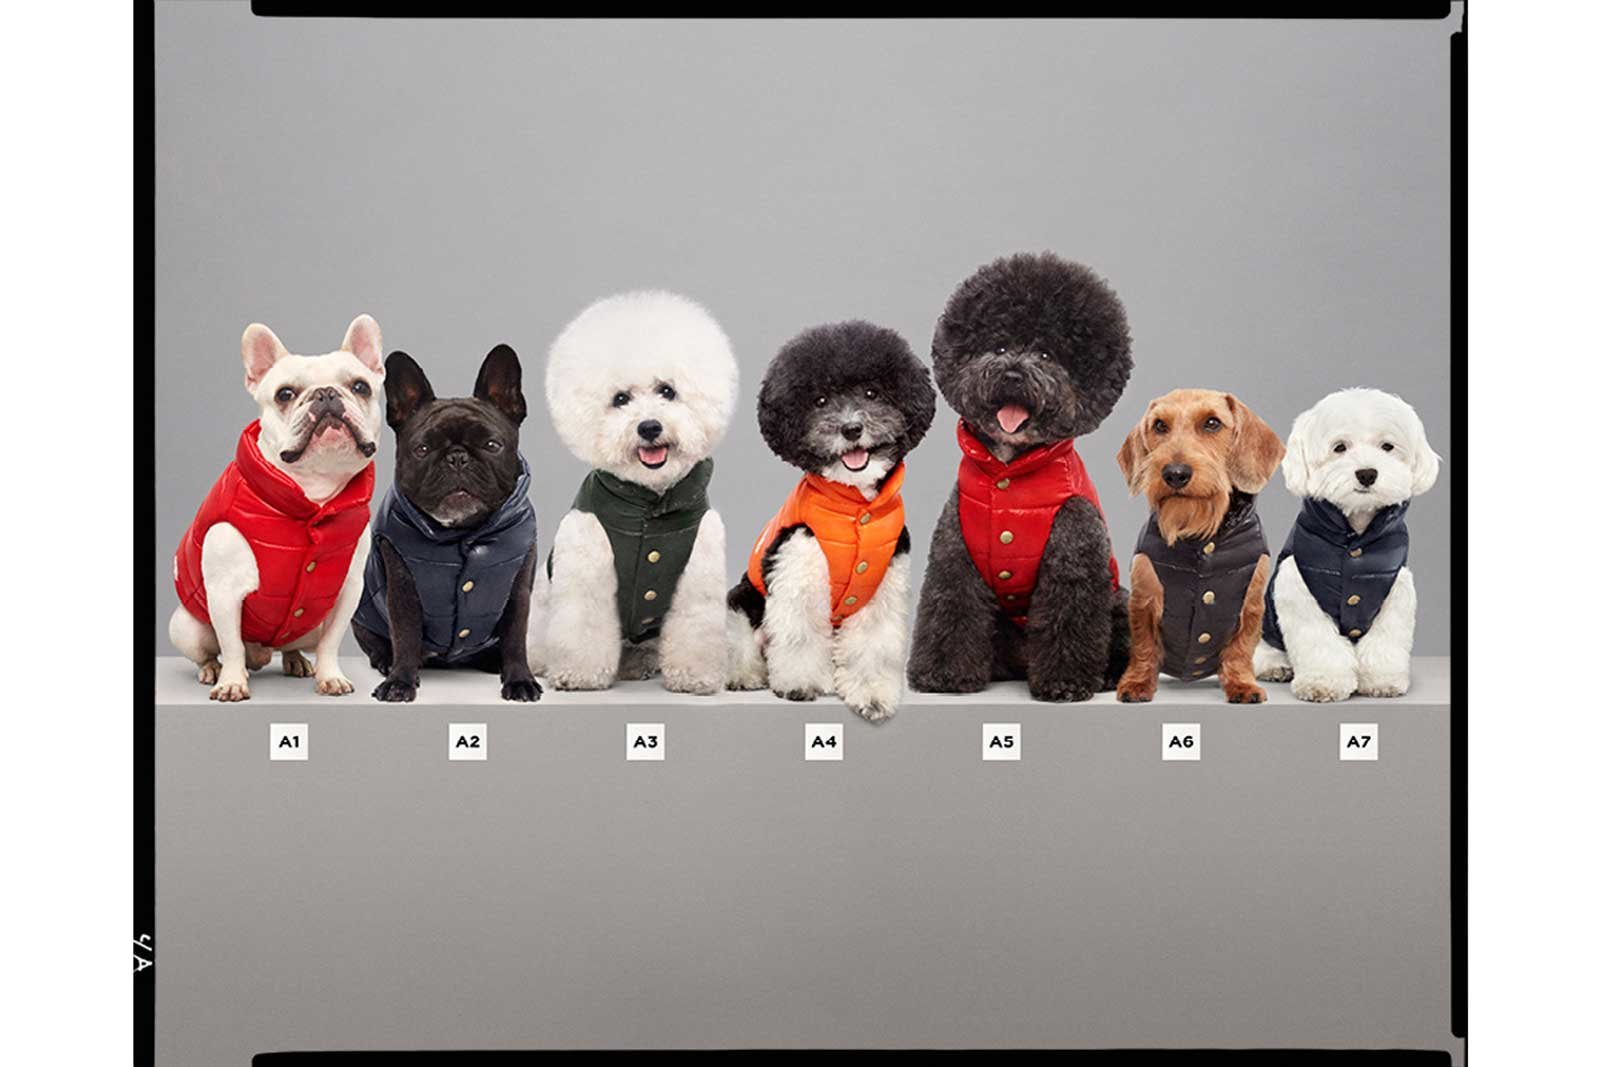 Mixture of Moncler Dog Puffer Jackets